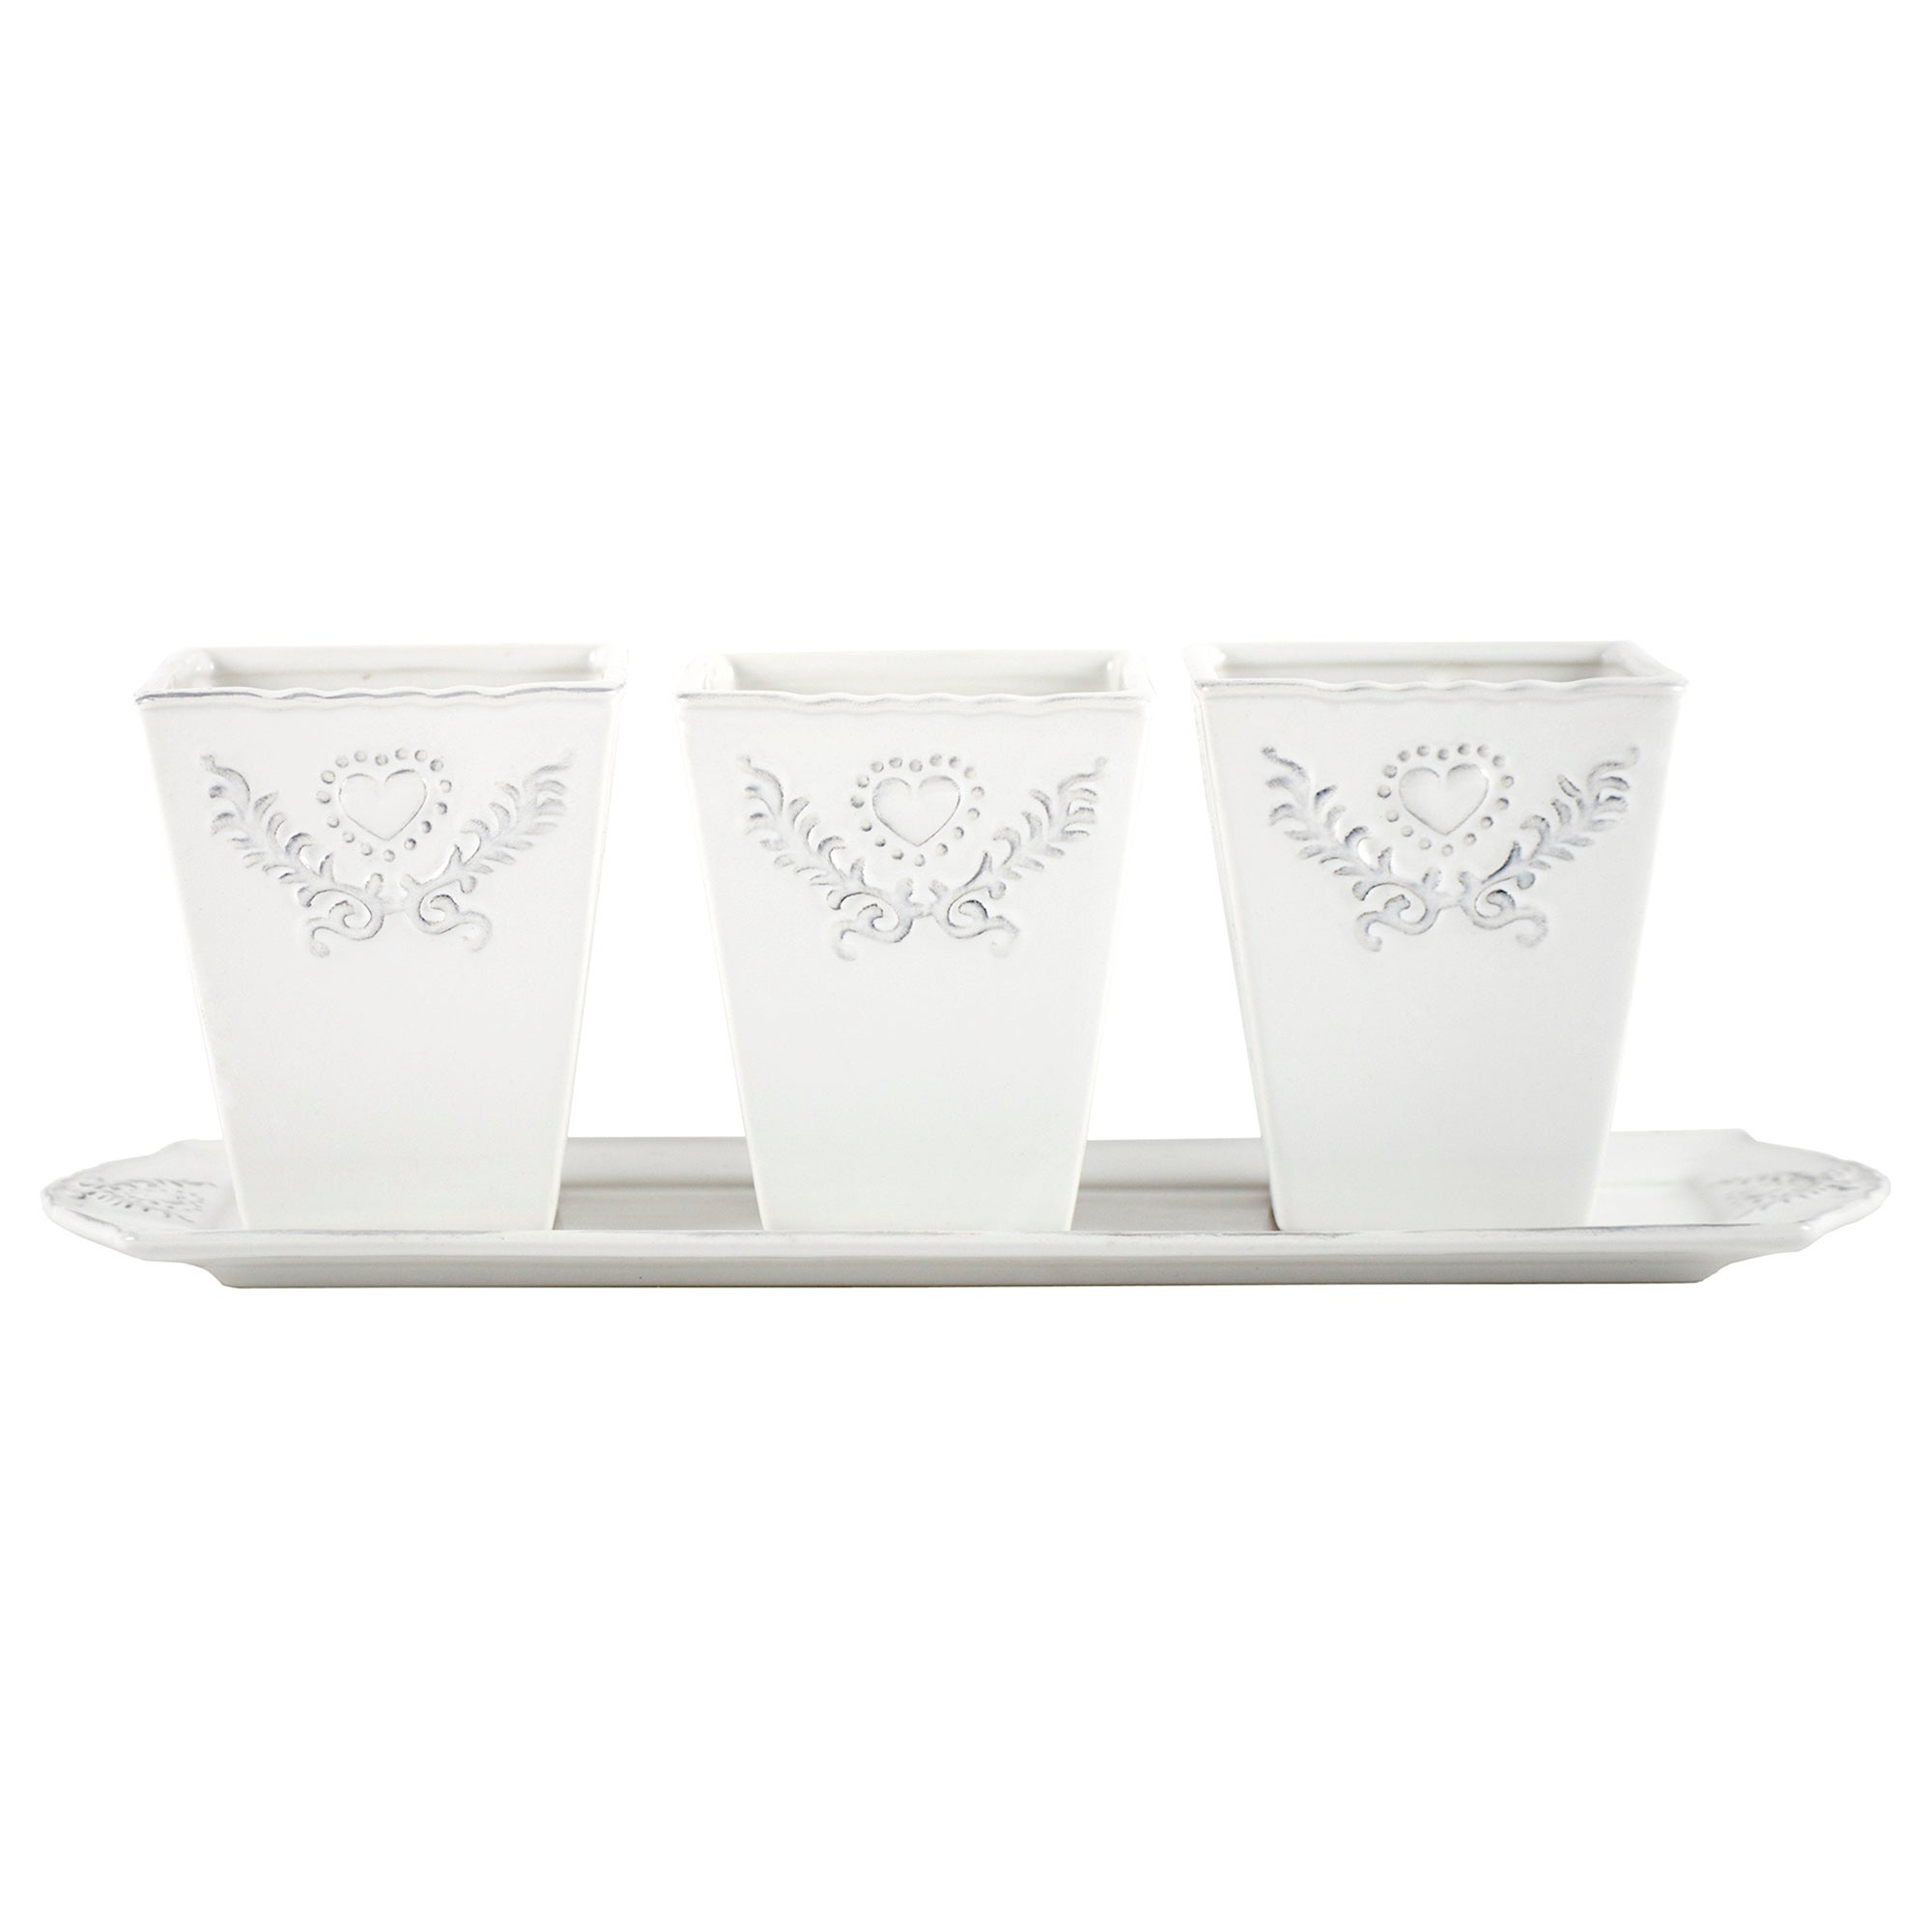 Maison Chic Set of 3 Herb Pots on Tray